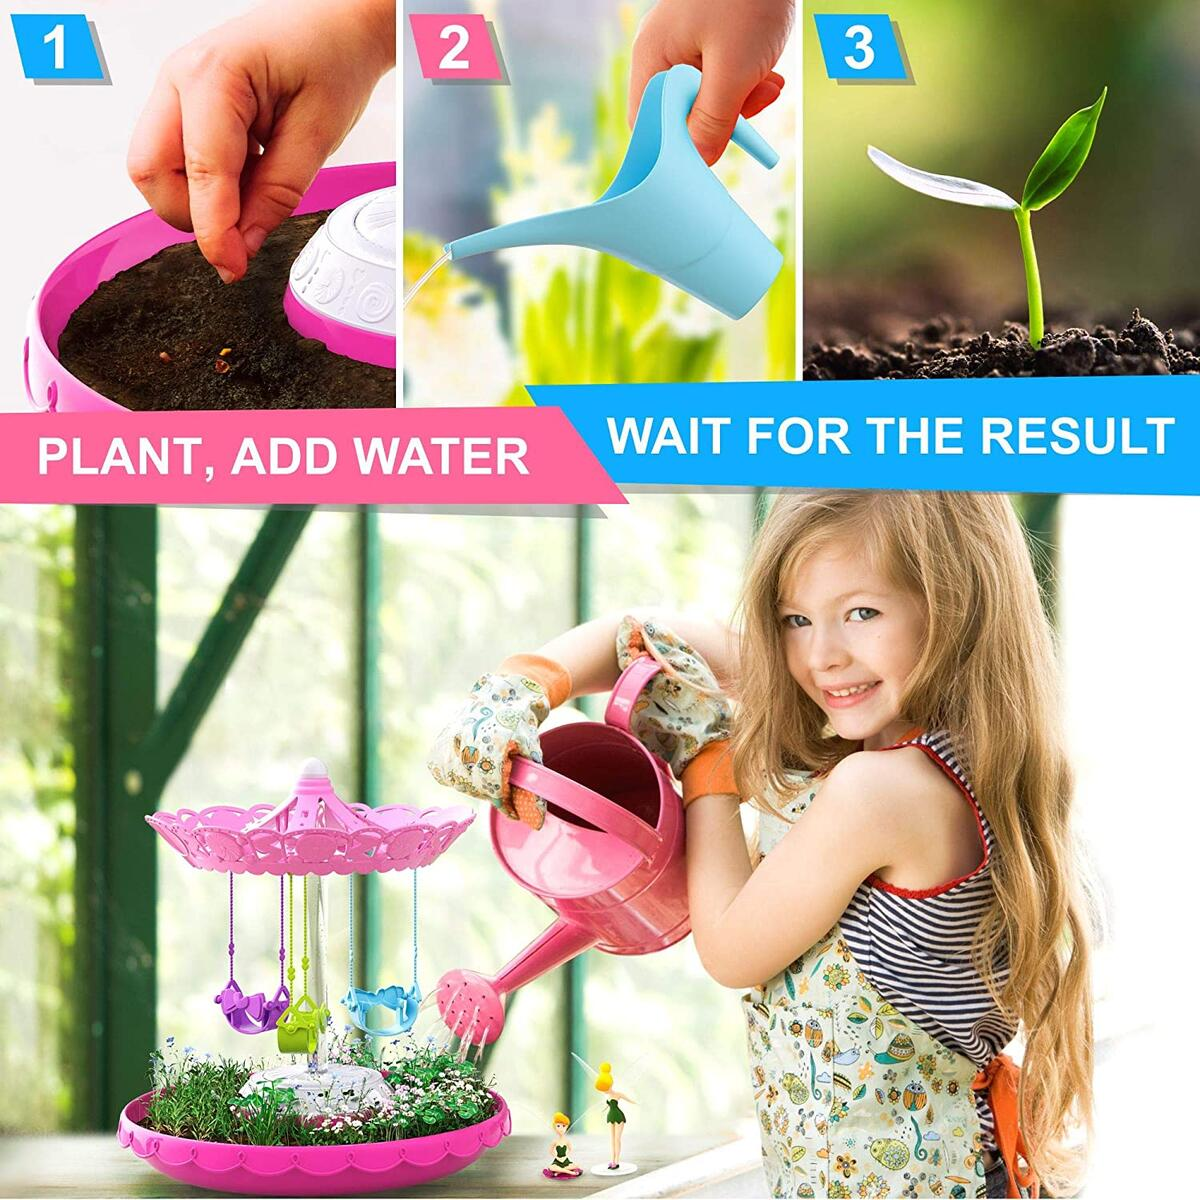 Fairy Garden Kit for Kids with Fairies - Grow Your Own First Magic Garden Indoor & Outdoor - Gardening DIY Planting Set with Fairy Toys for Girls 3 - 8 Years Old - Plant Activity Gift Kit with Seeds